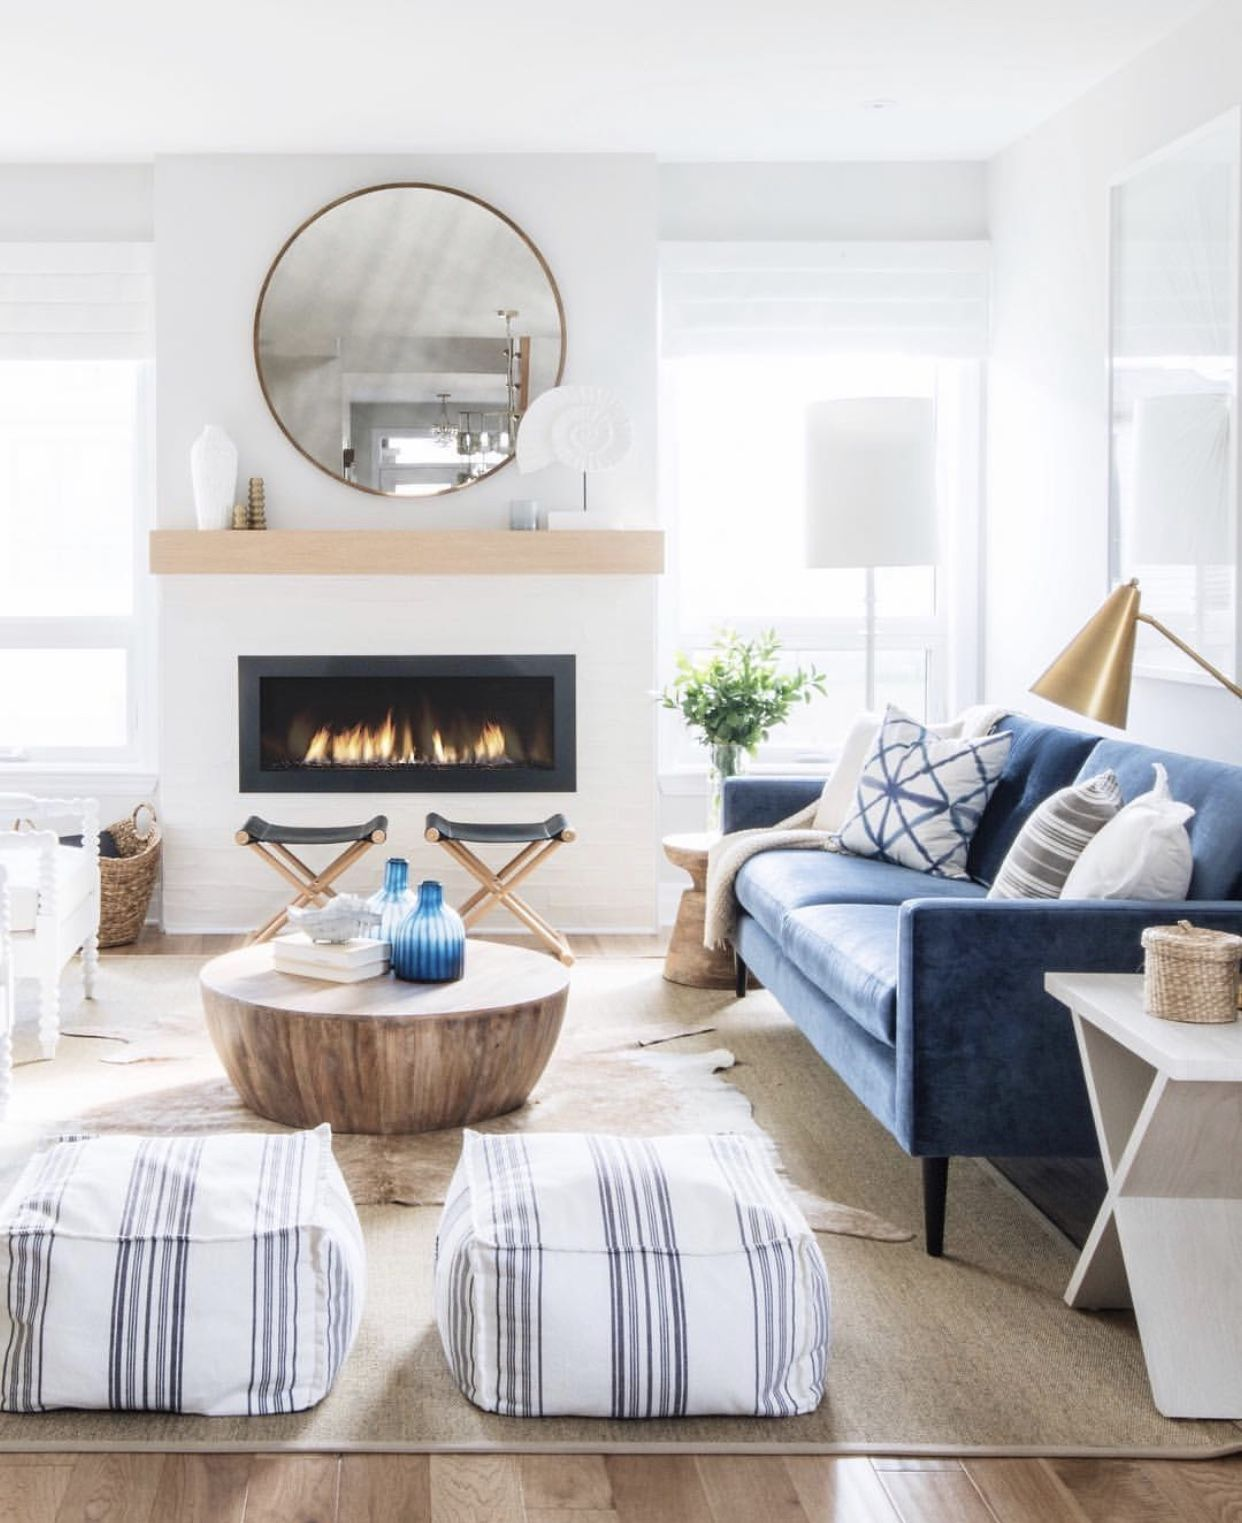 I M In Love Boho Coastal Farmhouse Living Room With Blue Couch Navy Director S Stools Navy Blue Couch Living Room Farm House Living Room Blue Couch Living